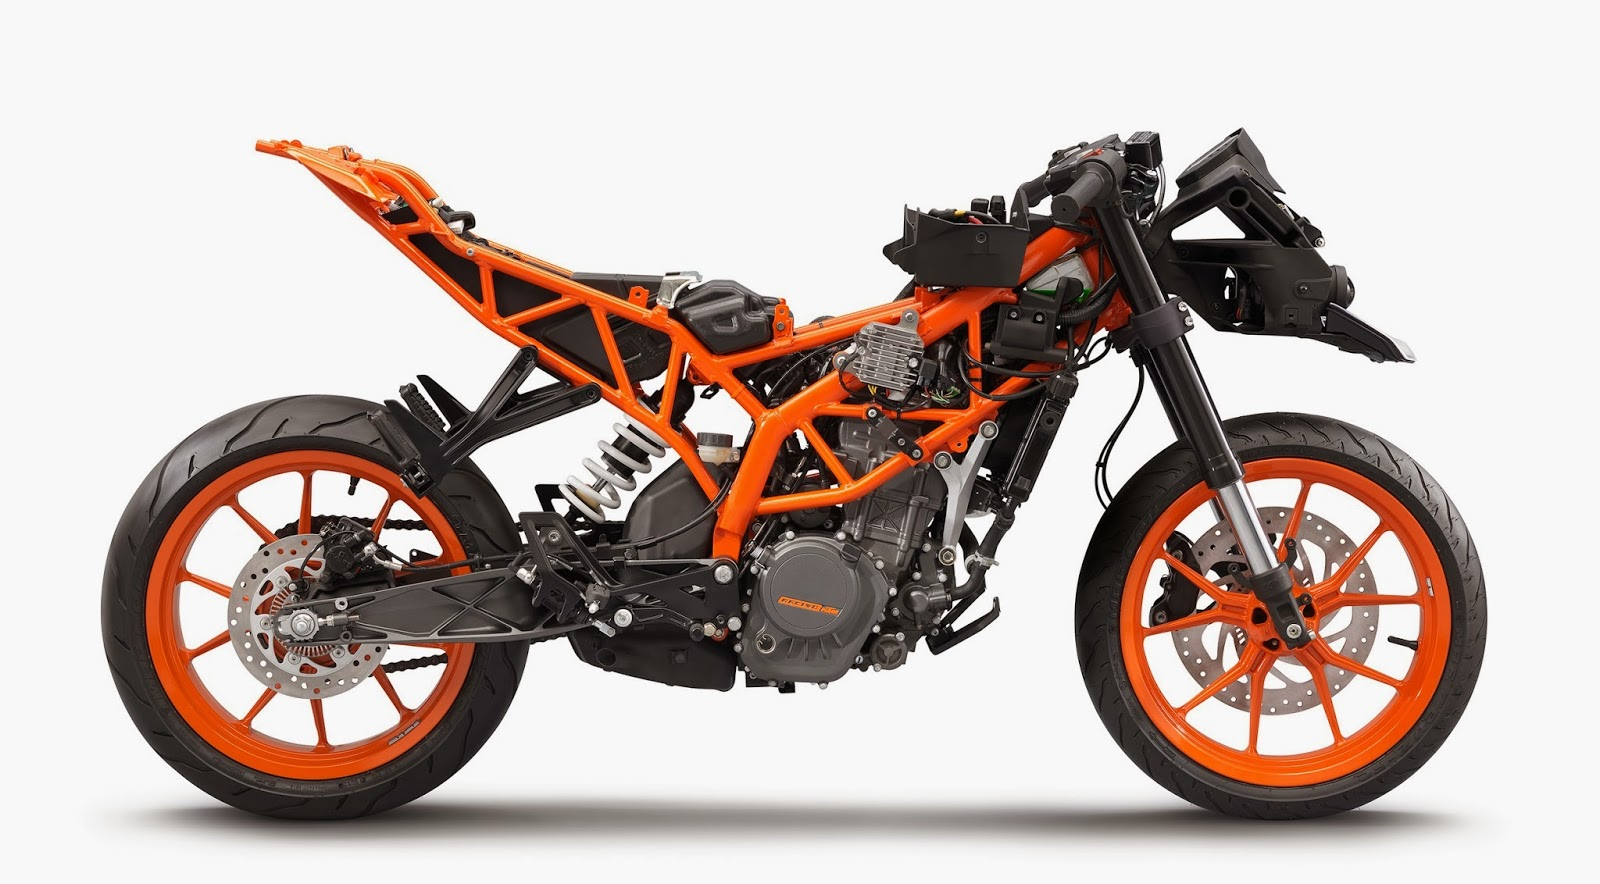 New Ktm Scooty Price >> KTM RC 125/200/390: 30 high-resolution photos released